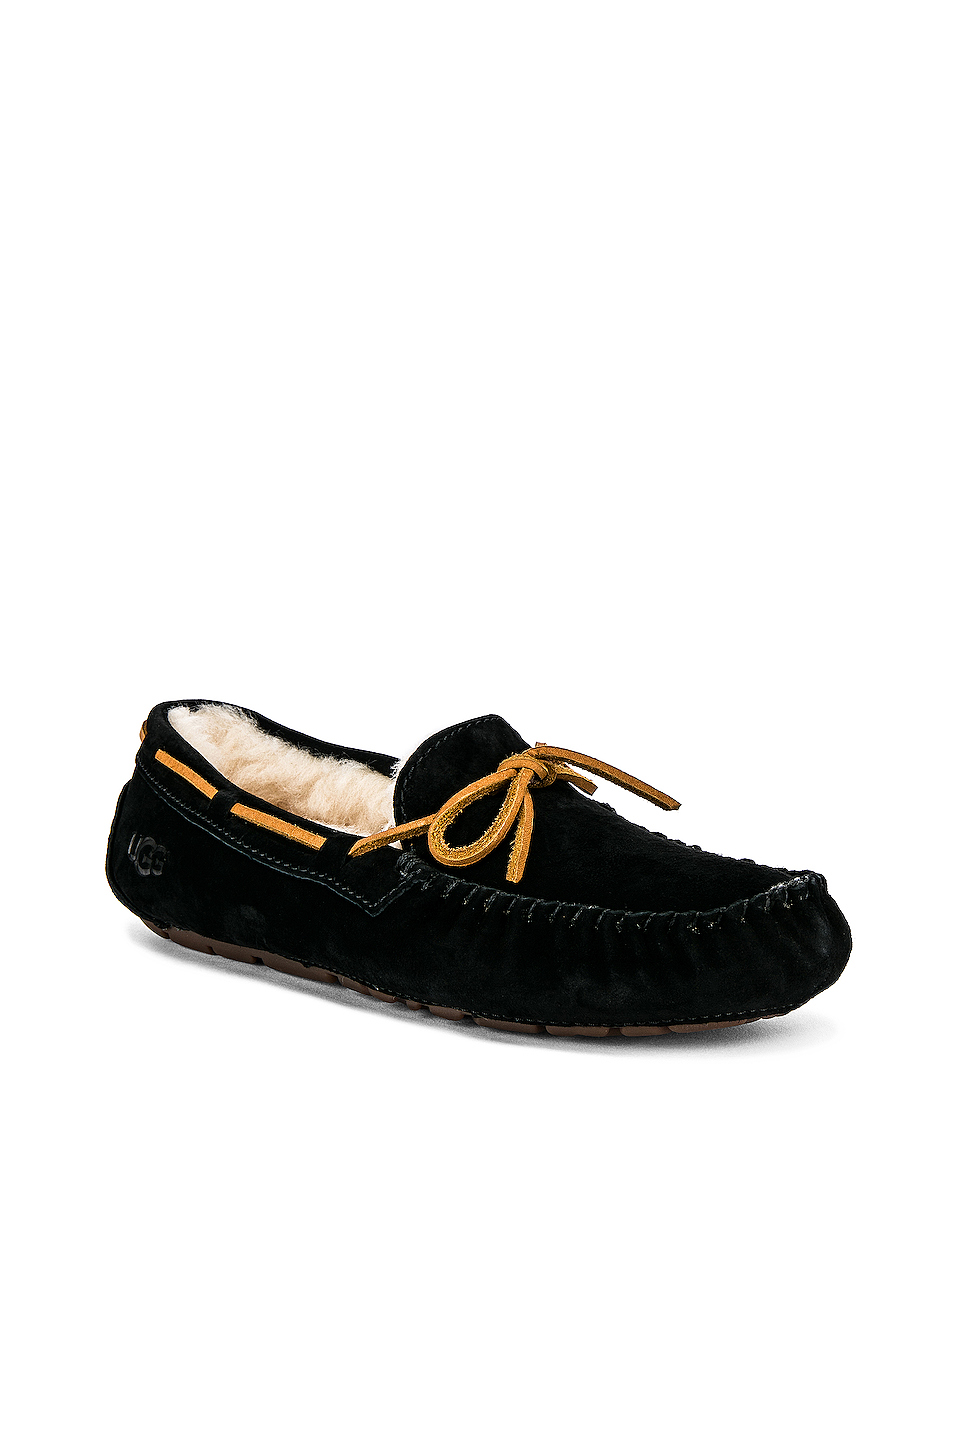 39289c77c8b Dakota Slipper, UGG